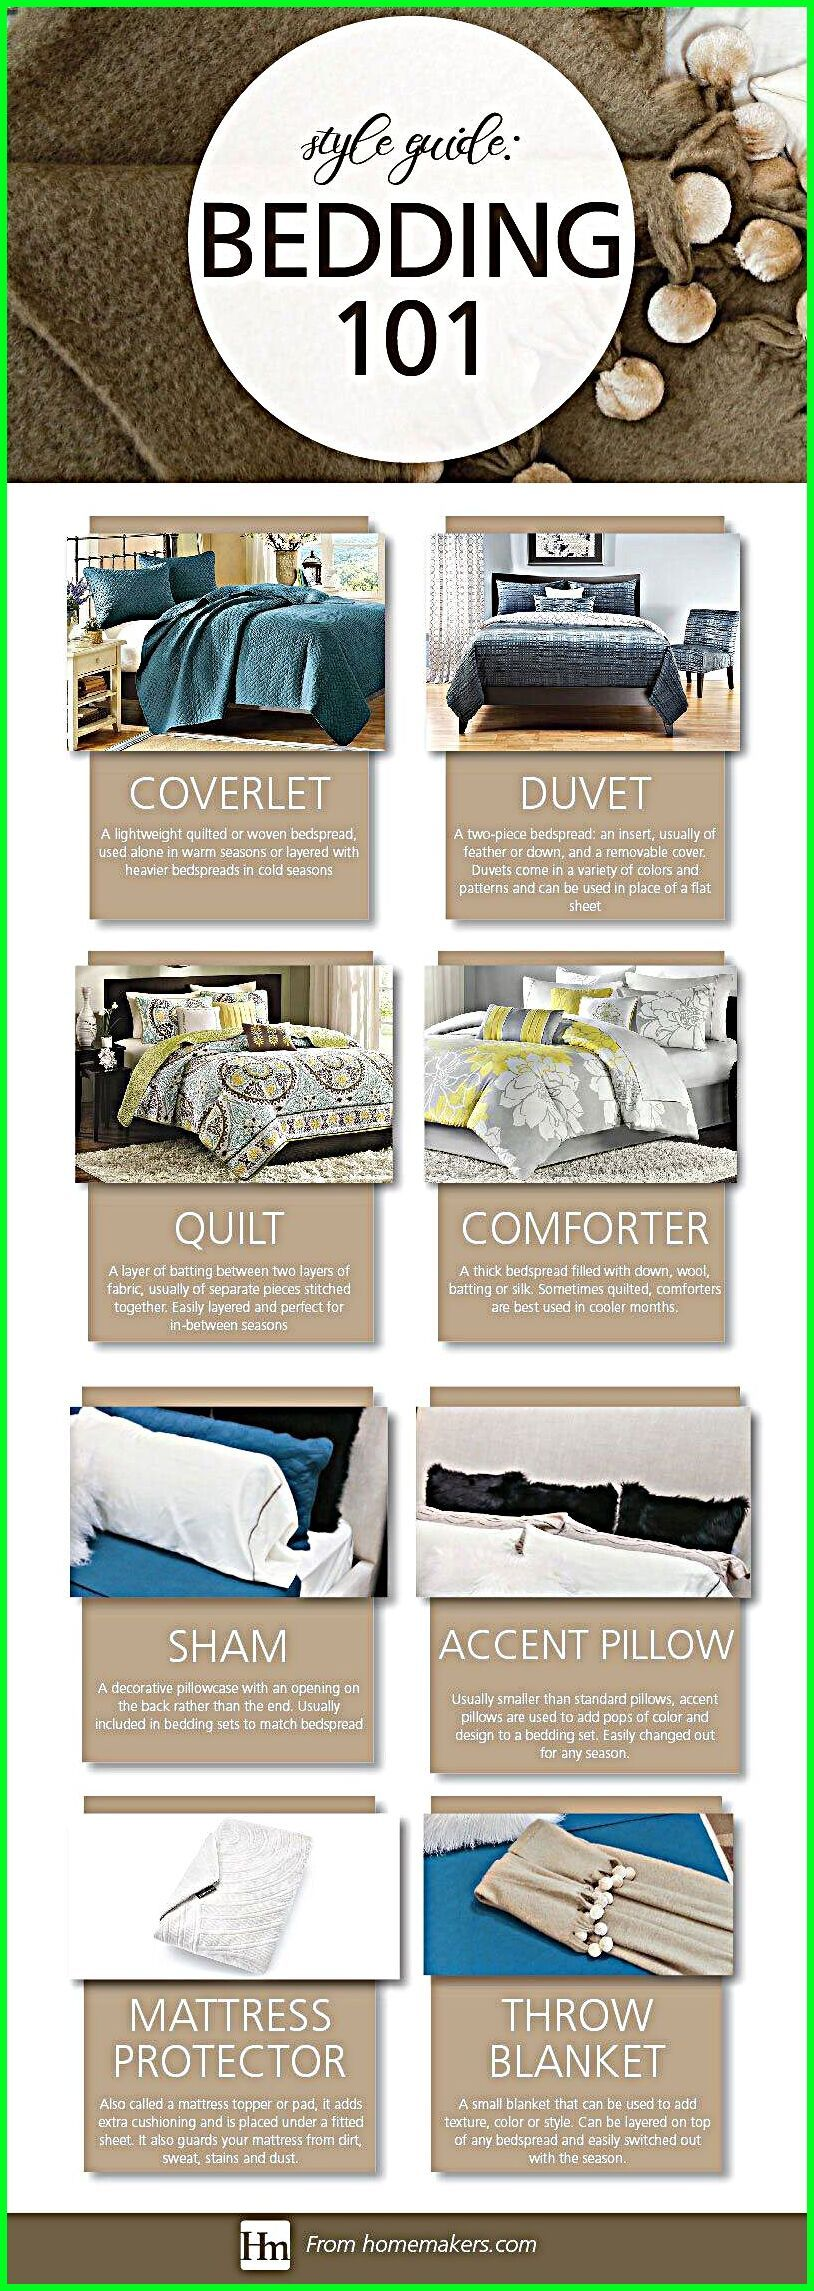 12++ Whats the difference between a duvet and comforter info